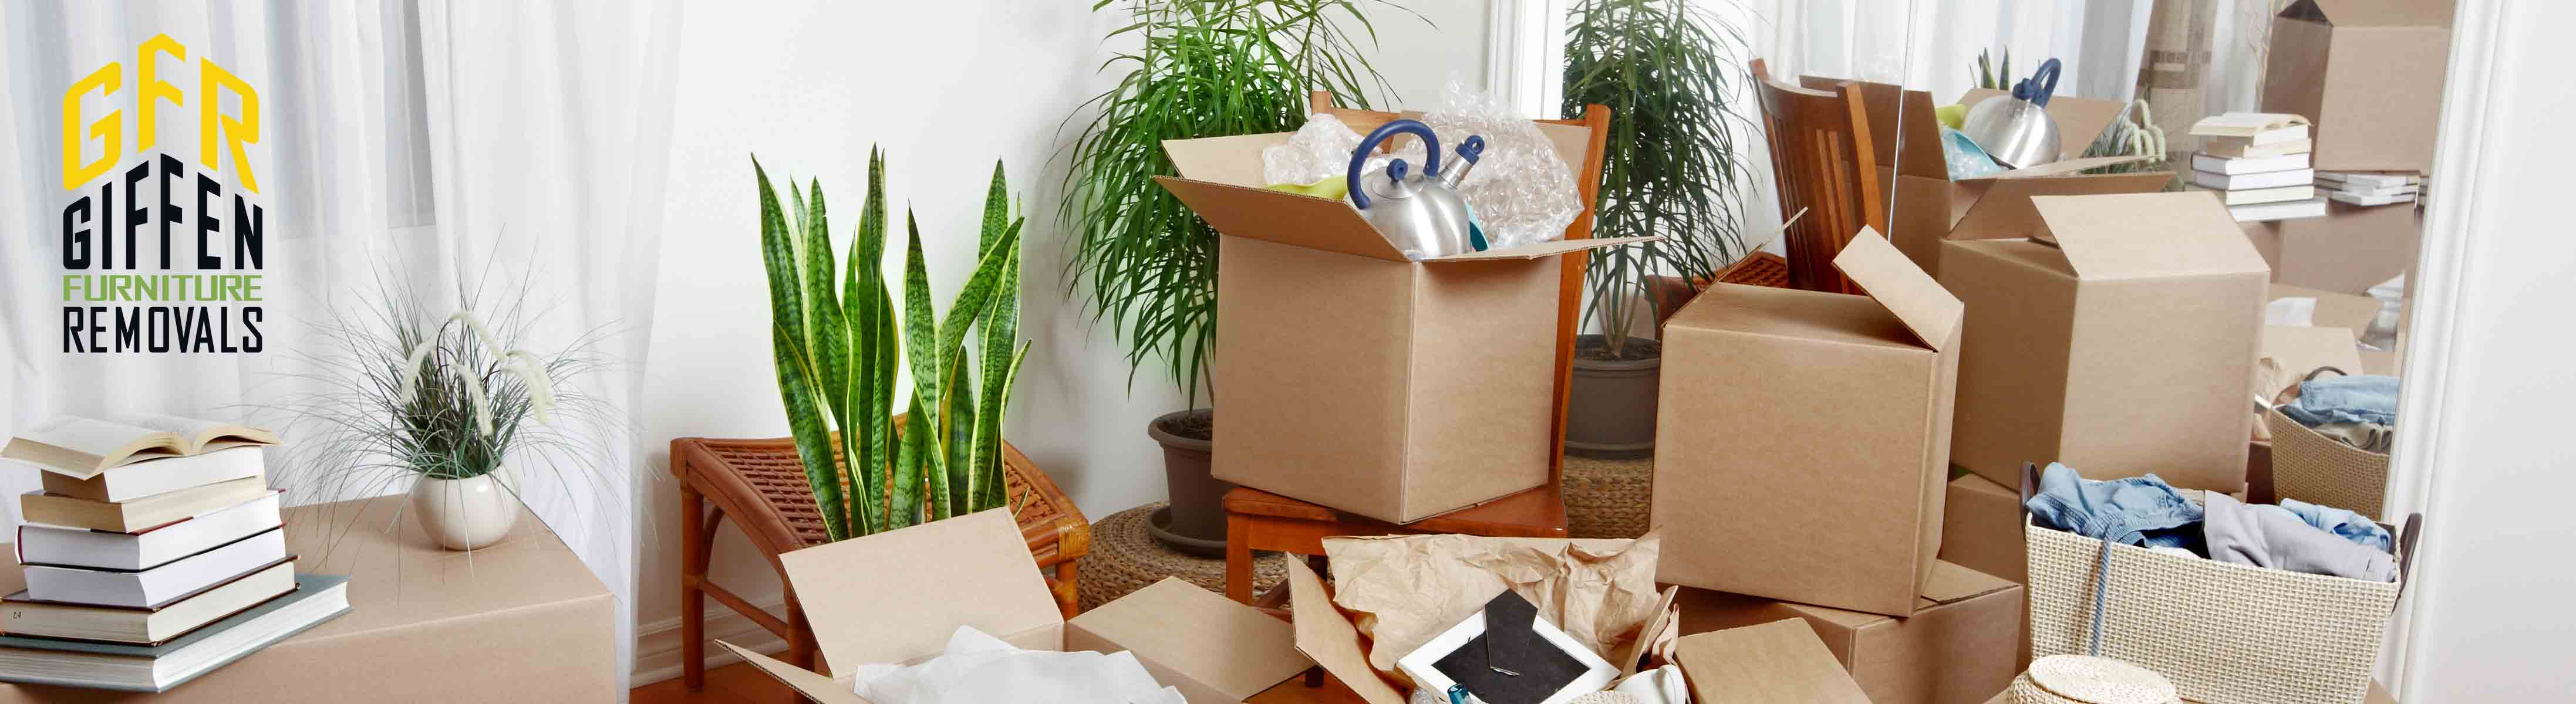 Giffen Furniture Removals How To Pack An Entire House In Just One Day